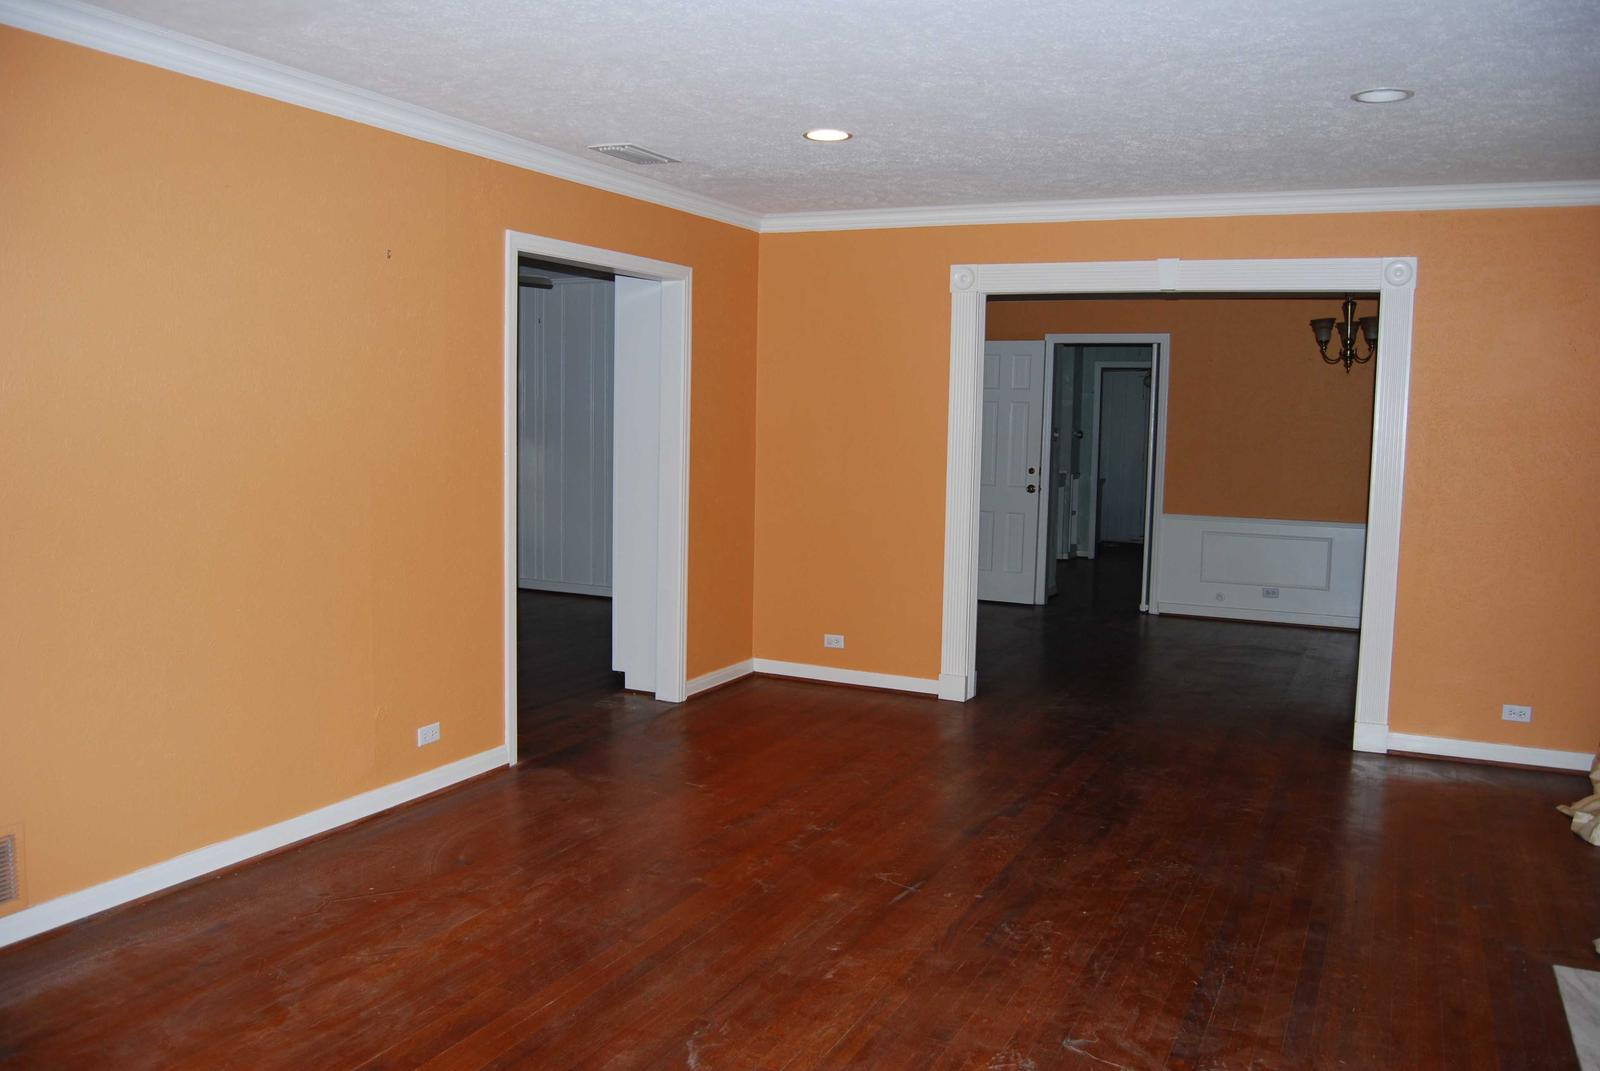 Look At Pics And Help Suggest Wall Color Hardwood Floors Paint Ceiling Home Interior